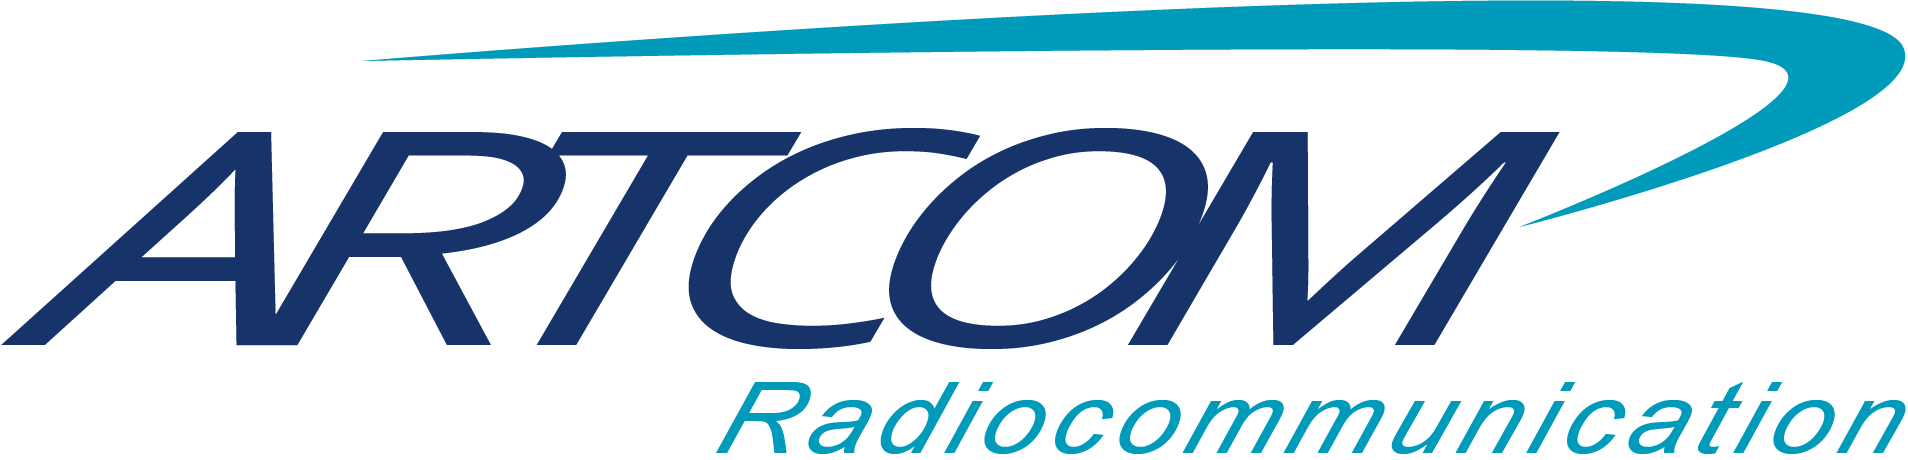 ARTCOM radiocommunication